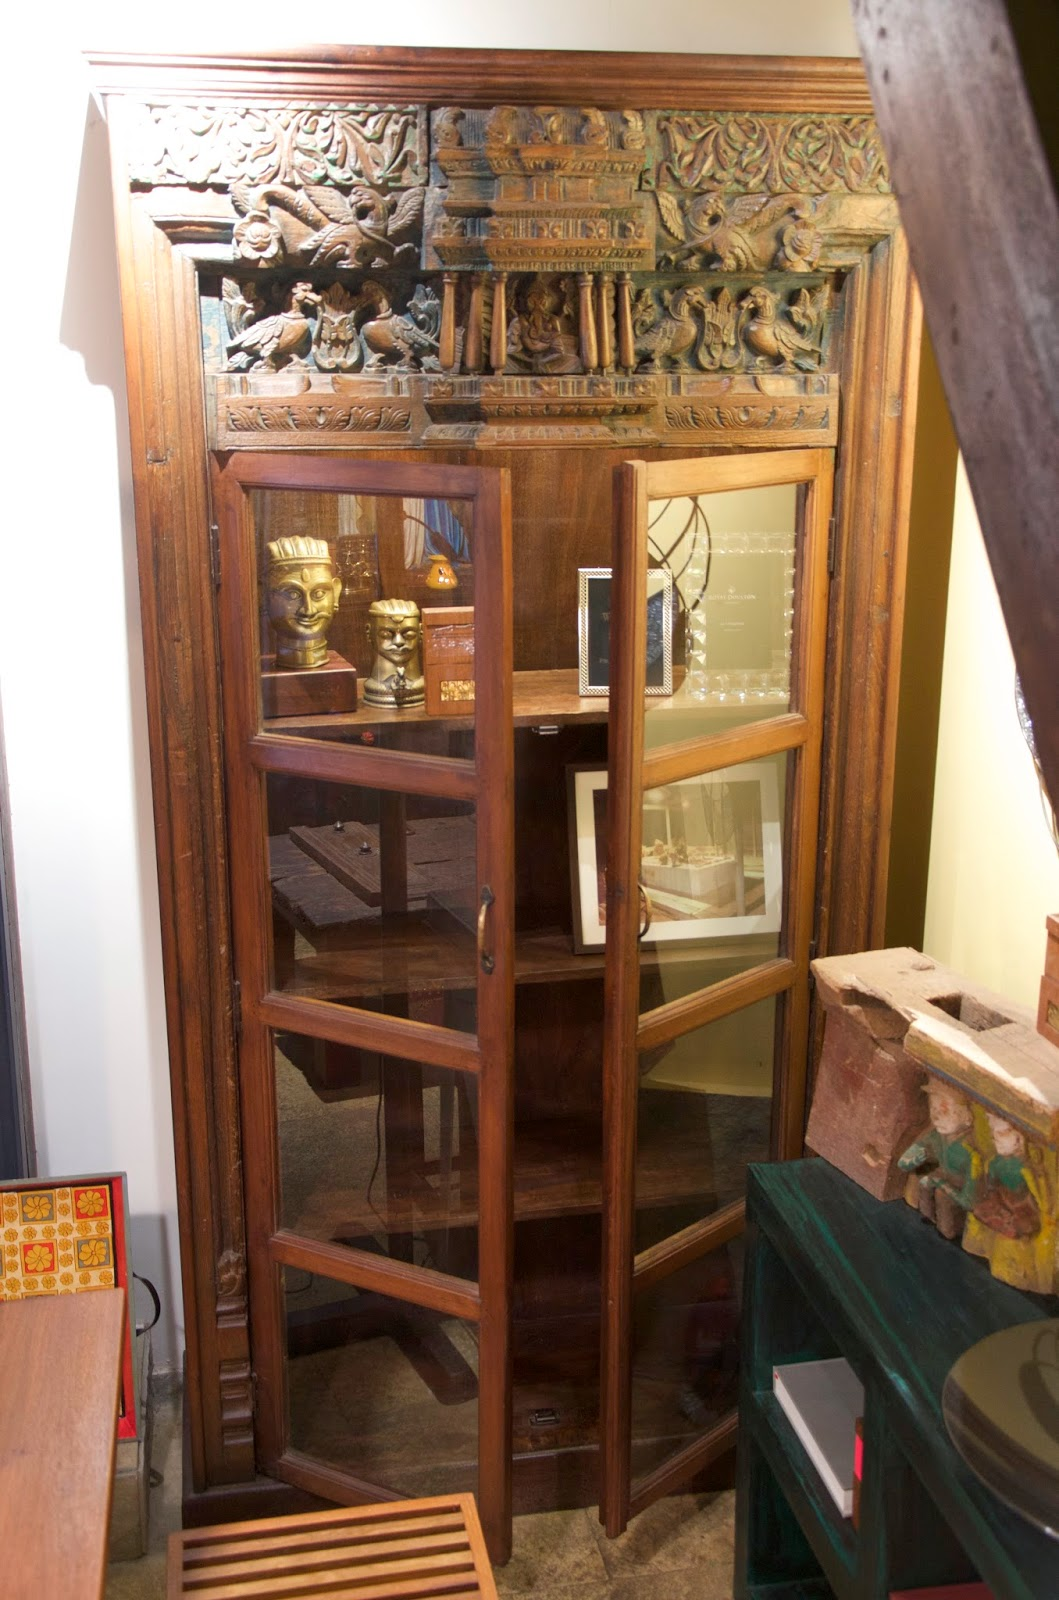 Incredible salvaged Burma teak door frame with intricate relief panel  incorporated above. Makes for a magnificent and unique book case. Rs 185,000 - BombayJules: Pondicherry (Mumbai) - New Antiques & Interiors Find!